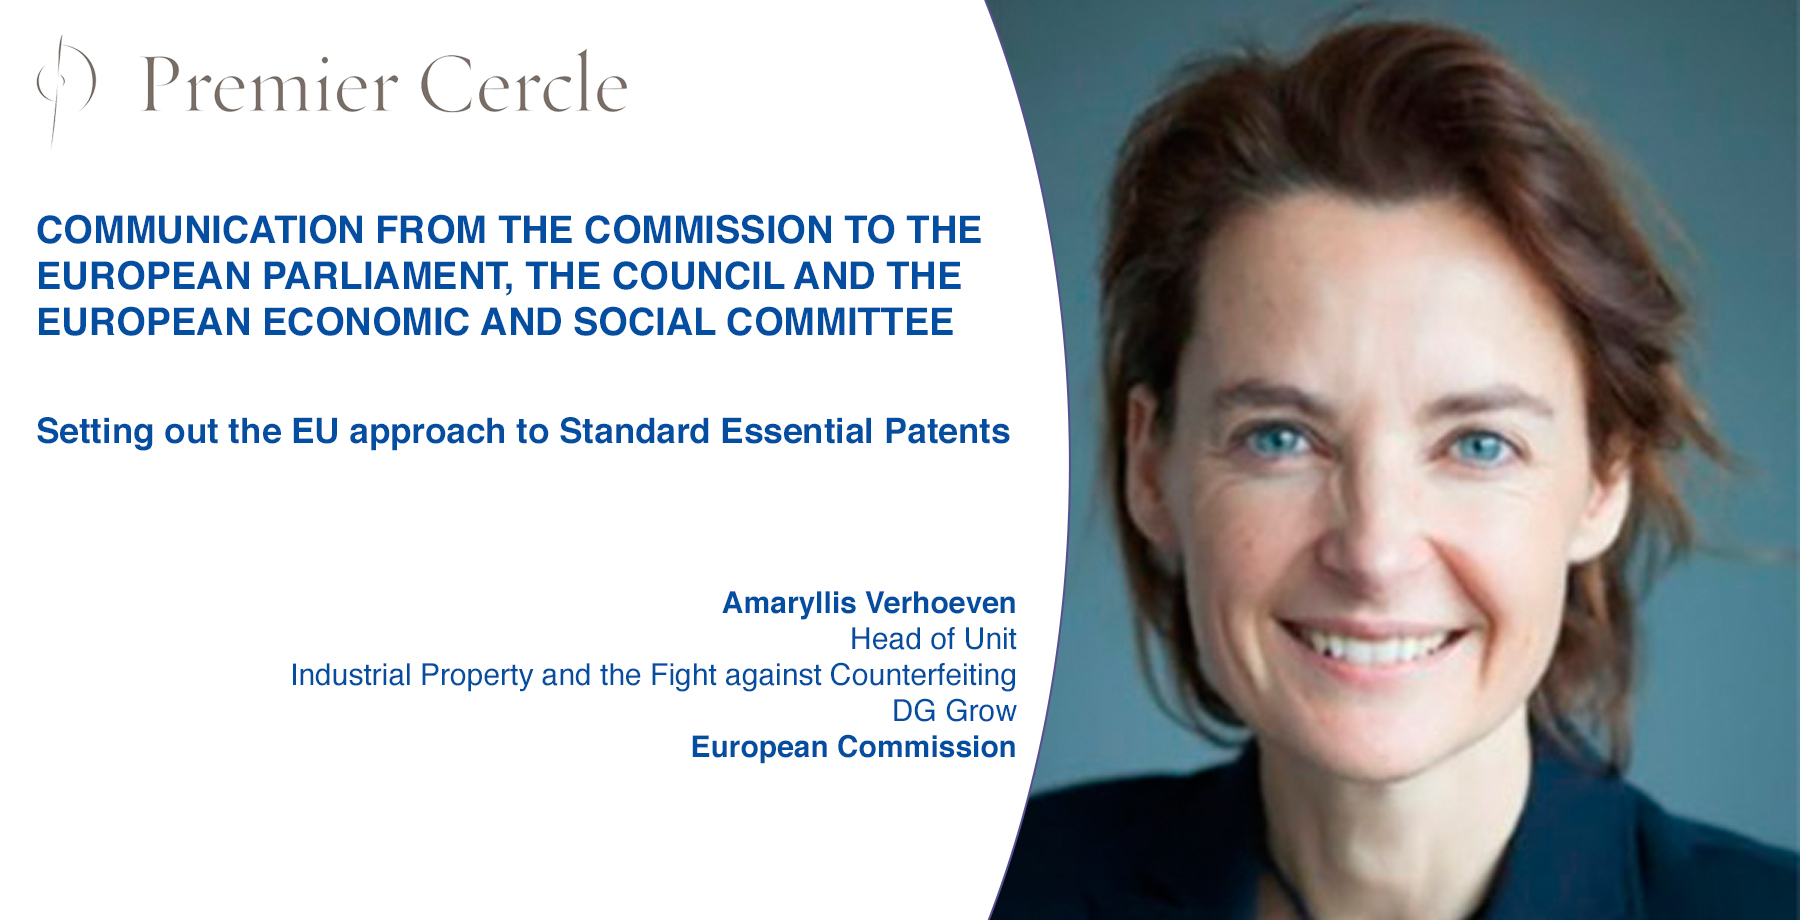 Setting out the EU approach to Standard Essential Patents